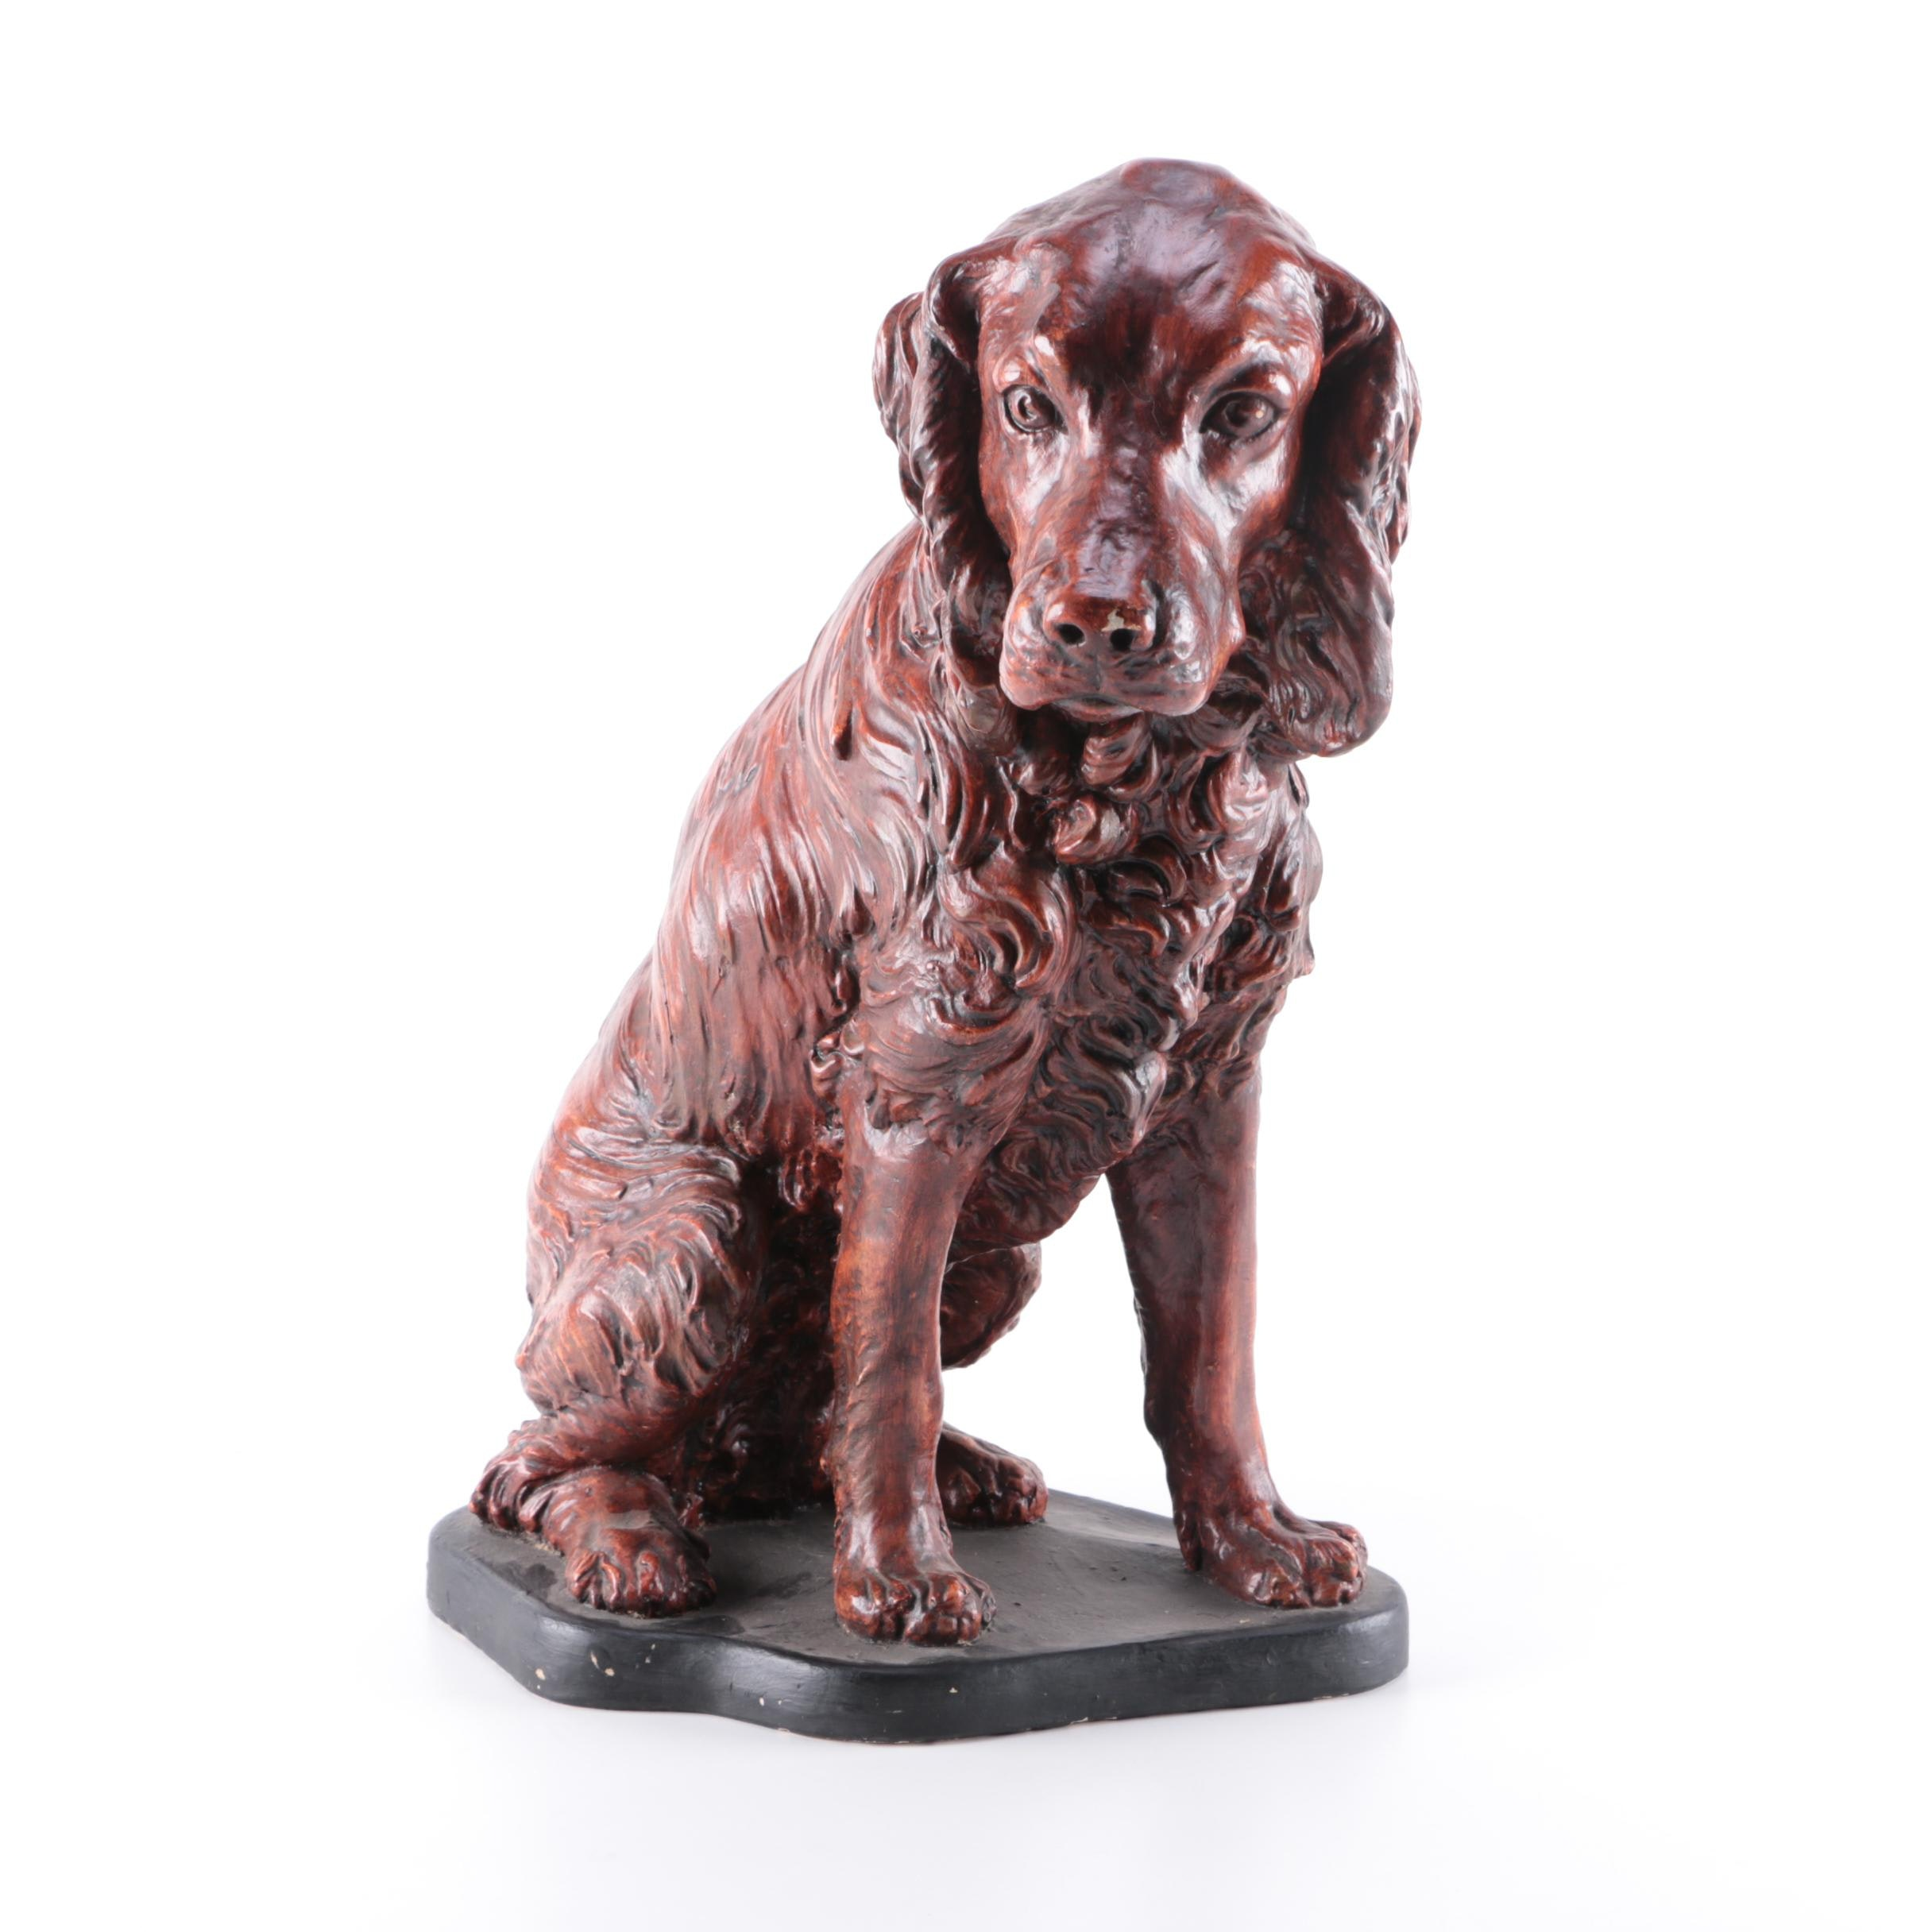 Plaster Sculpture of a Sitting Spaniel